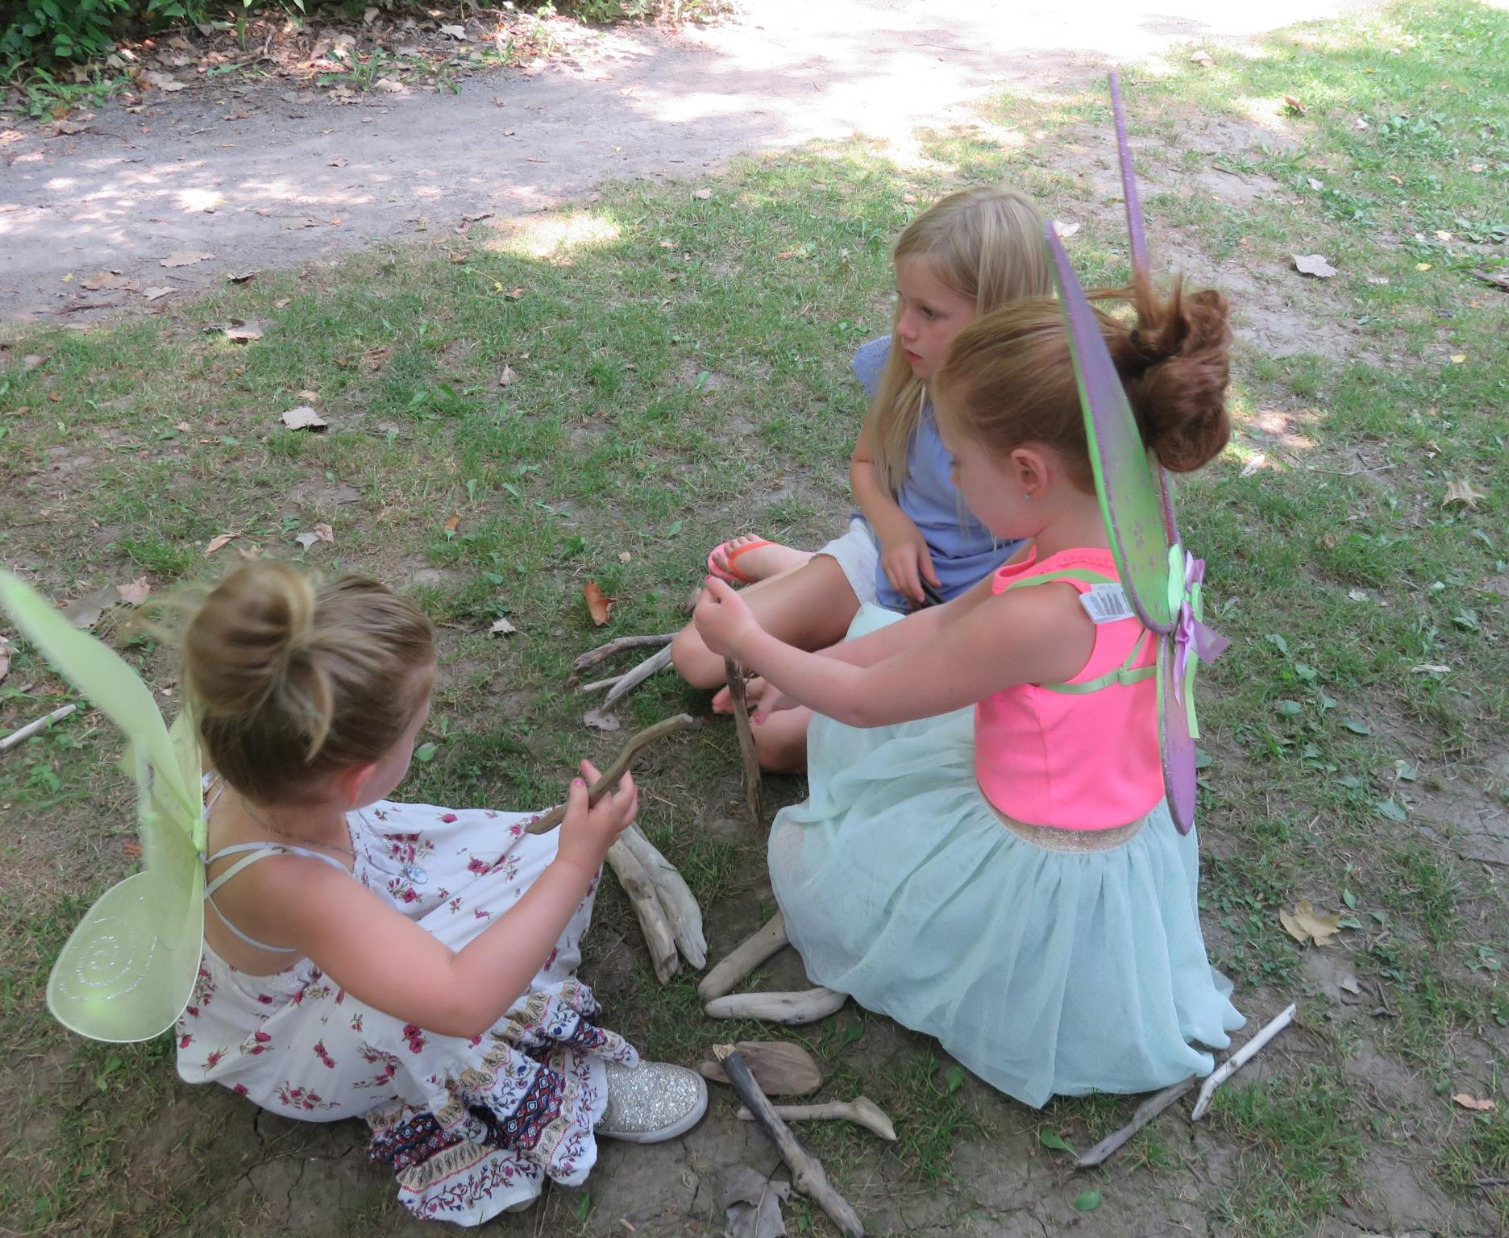 three young girls sitting on the ground in their fairy costumes working with sticks